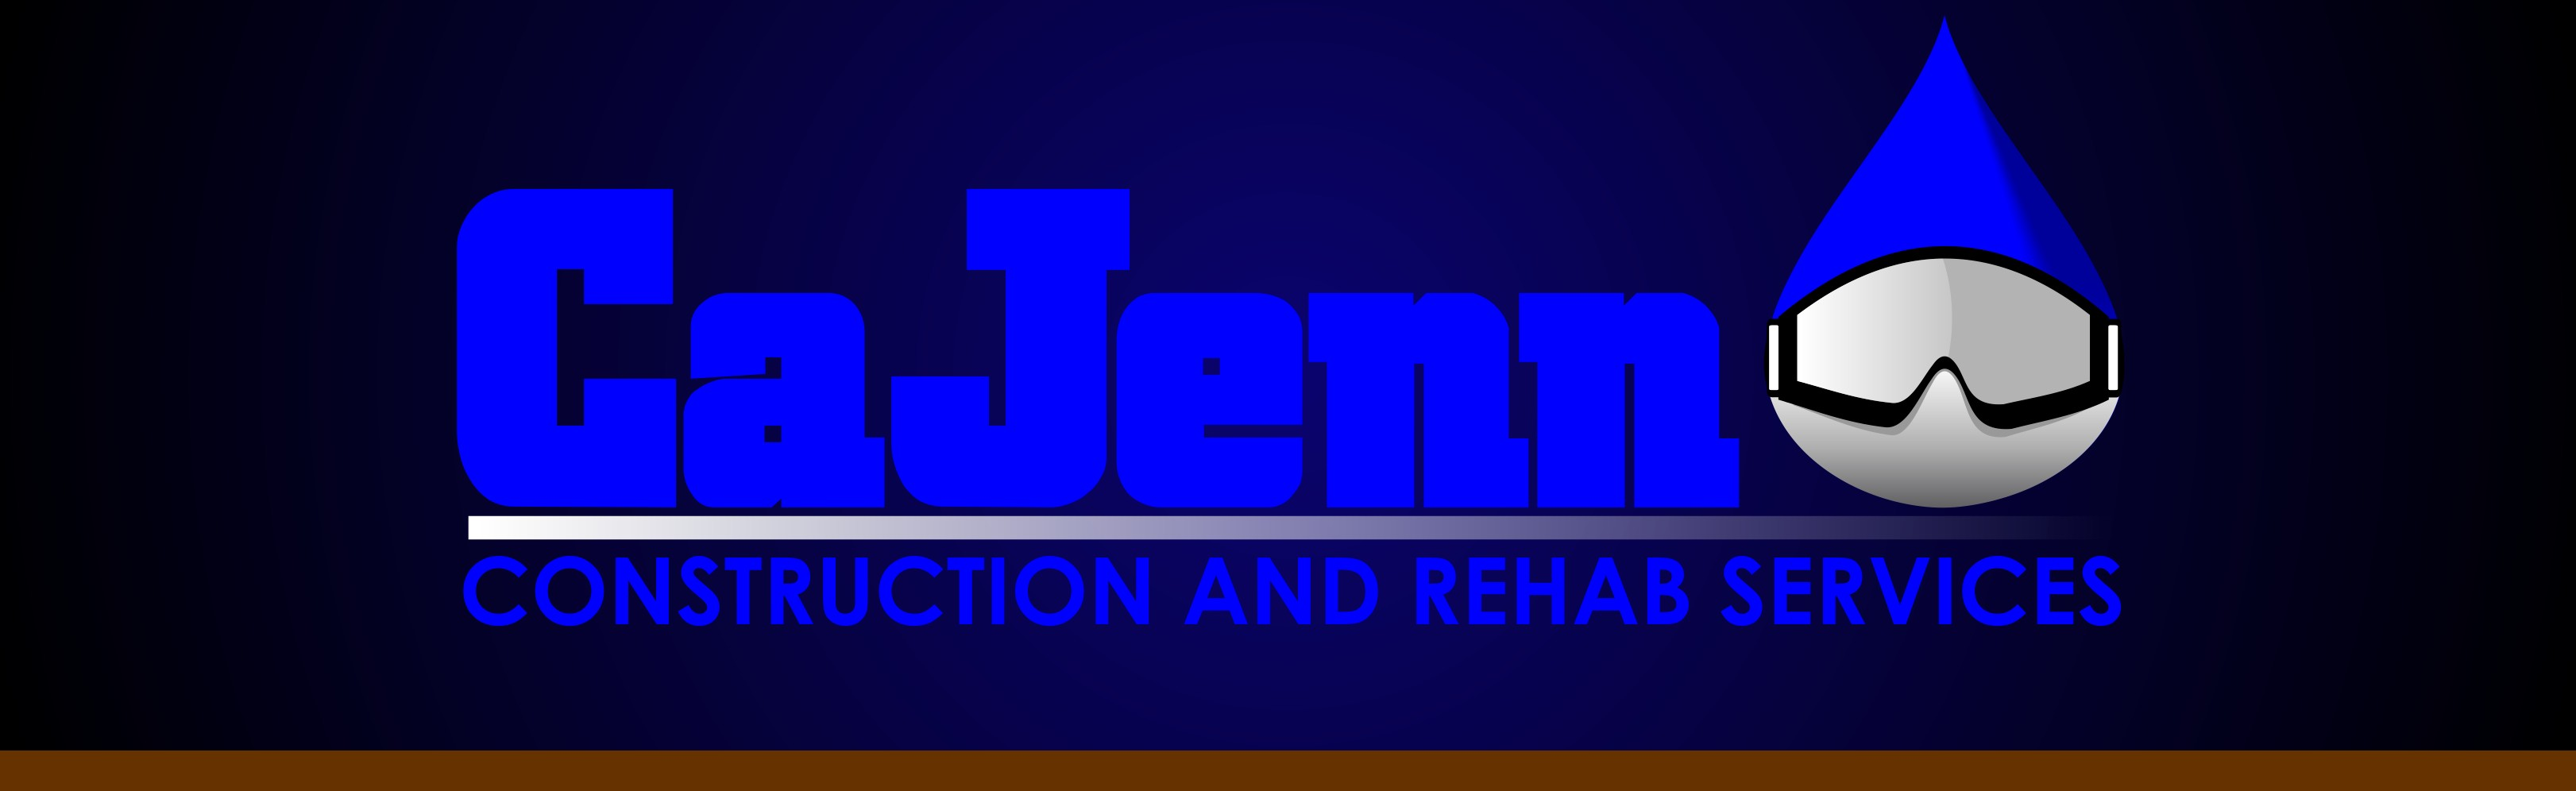 Logo Design by Crispin Jr Vasquez - Entry No. 231 in the Logo Design Contest New Logo Design for CaJenn Construction & Rehab Services.